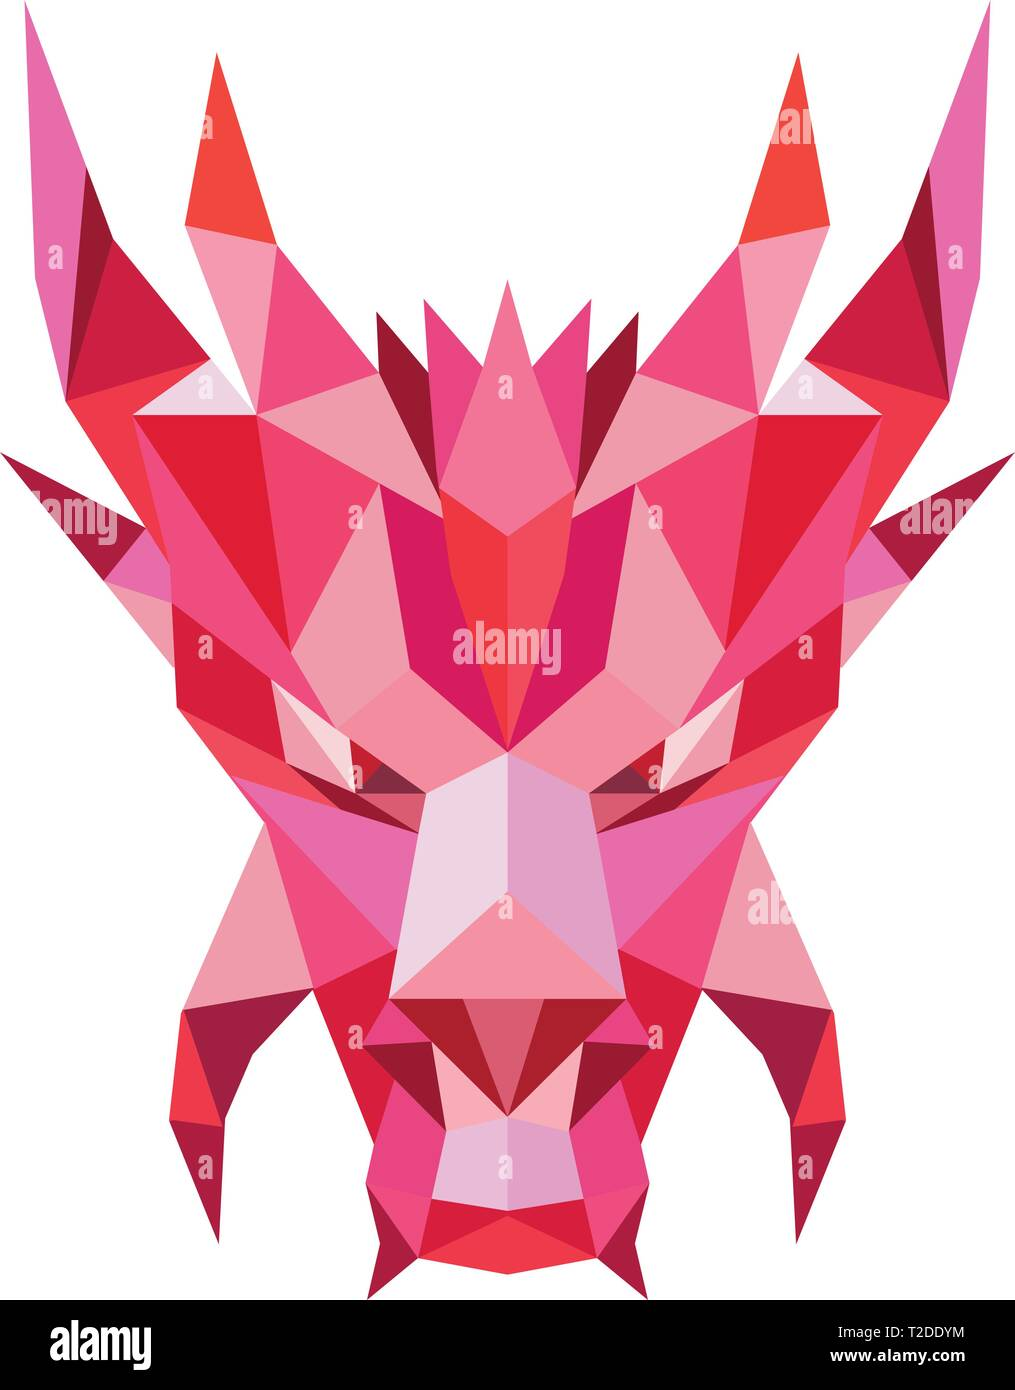 Low polygon style illustration of a head of a mythical dragon,serpent-like legendary creature that appears in  folklore of many cultures viewed from f - Stock Vector